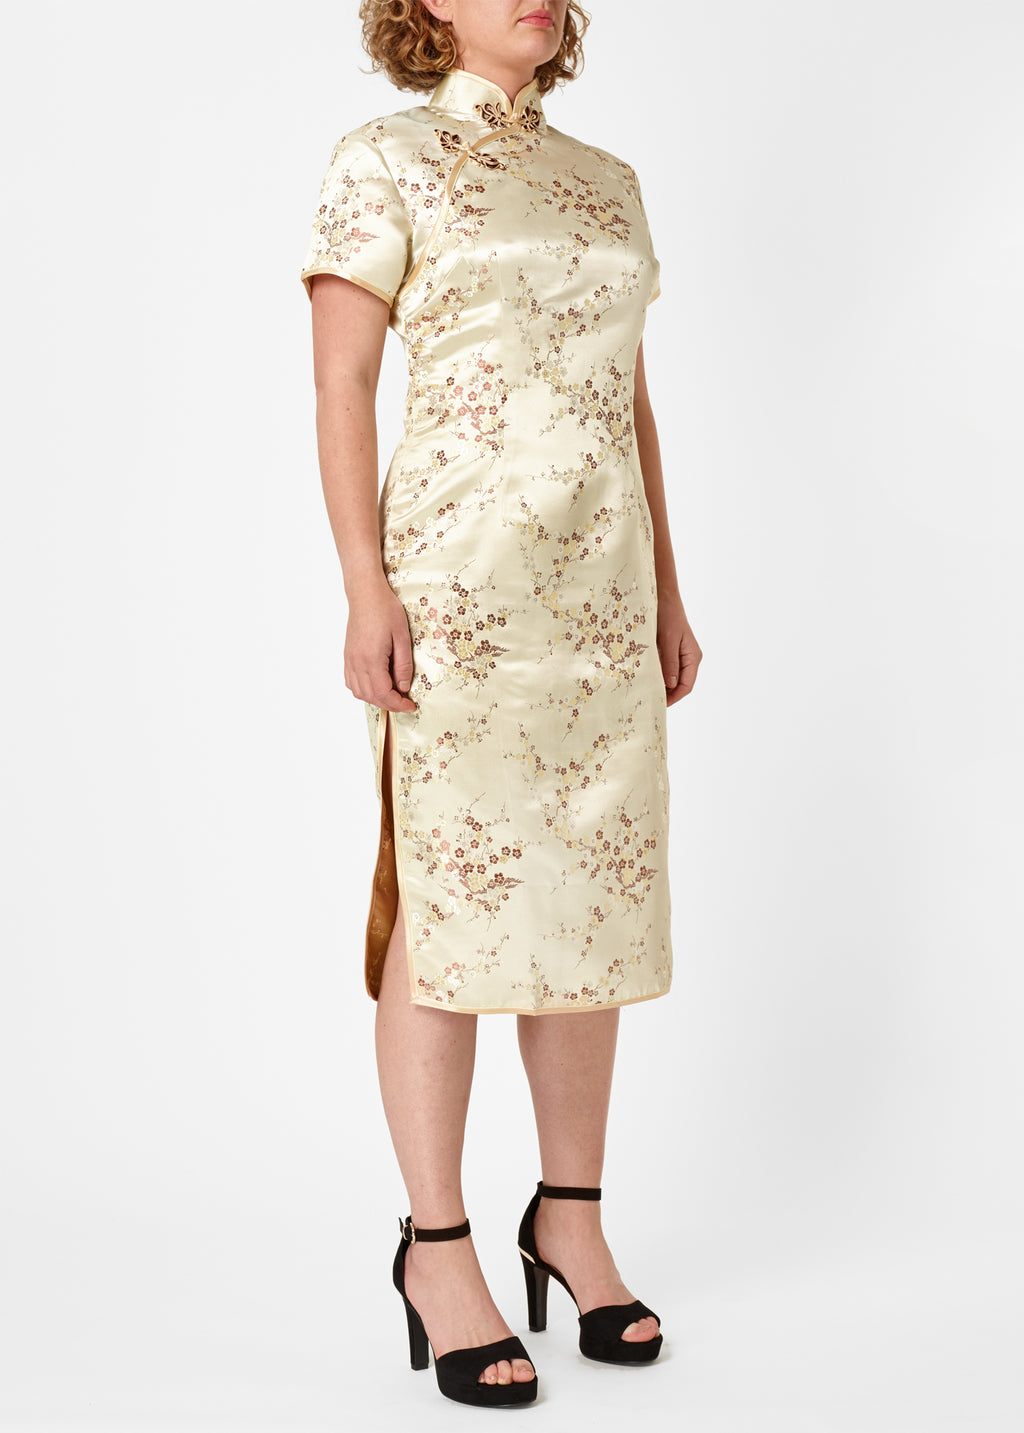 The Cheongsam or Qipao, is a feminine body-hugging dress with distinctive Chinese features of mandarin collar, side splits and hand stitched flower and knot frog fastenings. Manufactured in authentic high quality silk/rayon brocade in a classic gold cherry blossom design - a symbol of female beauty and love.